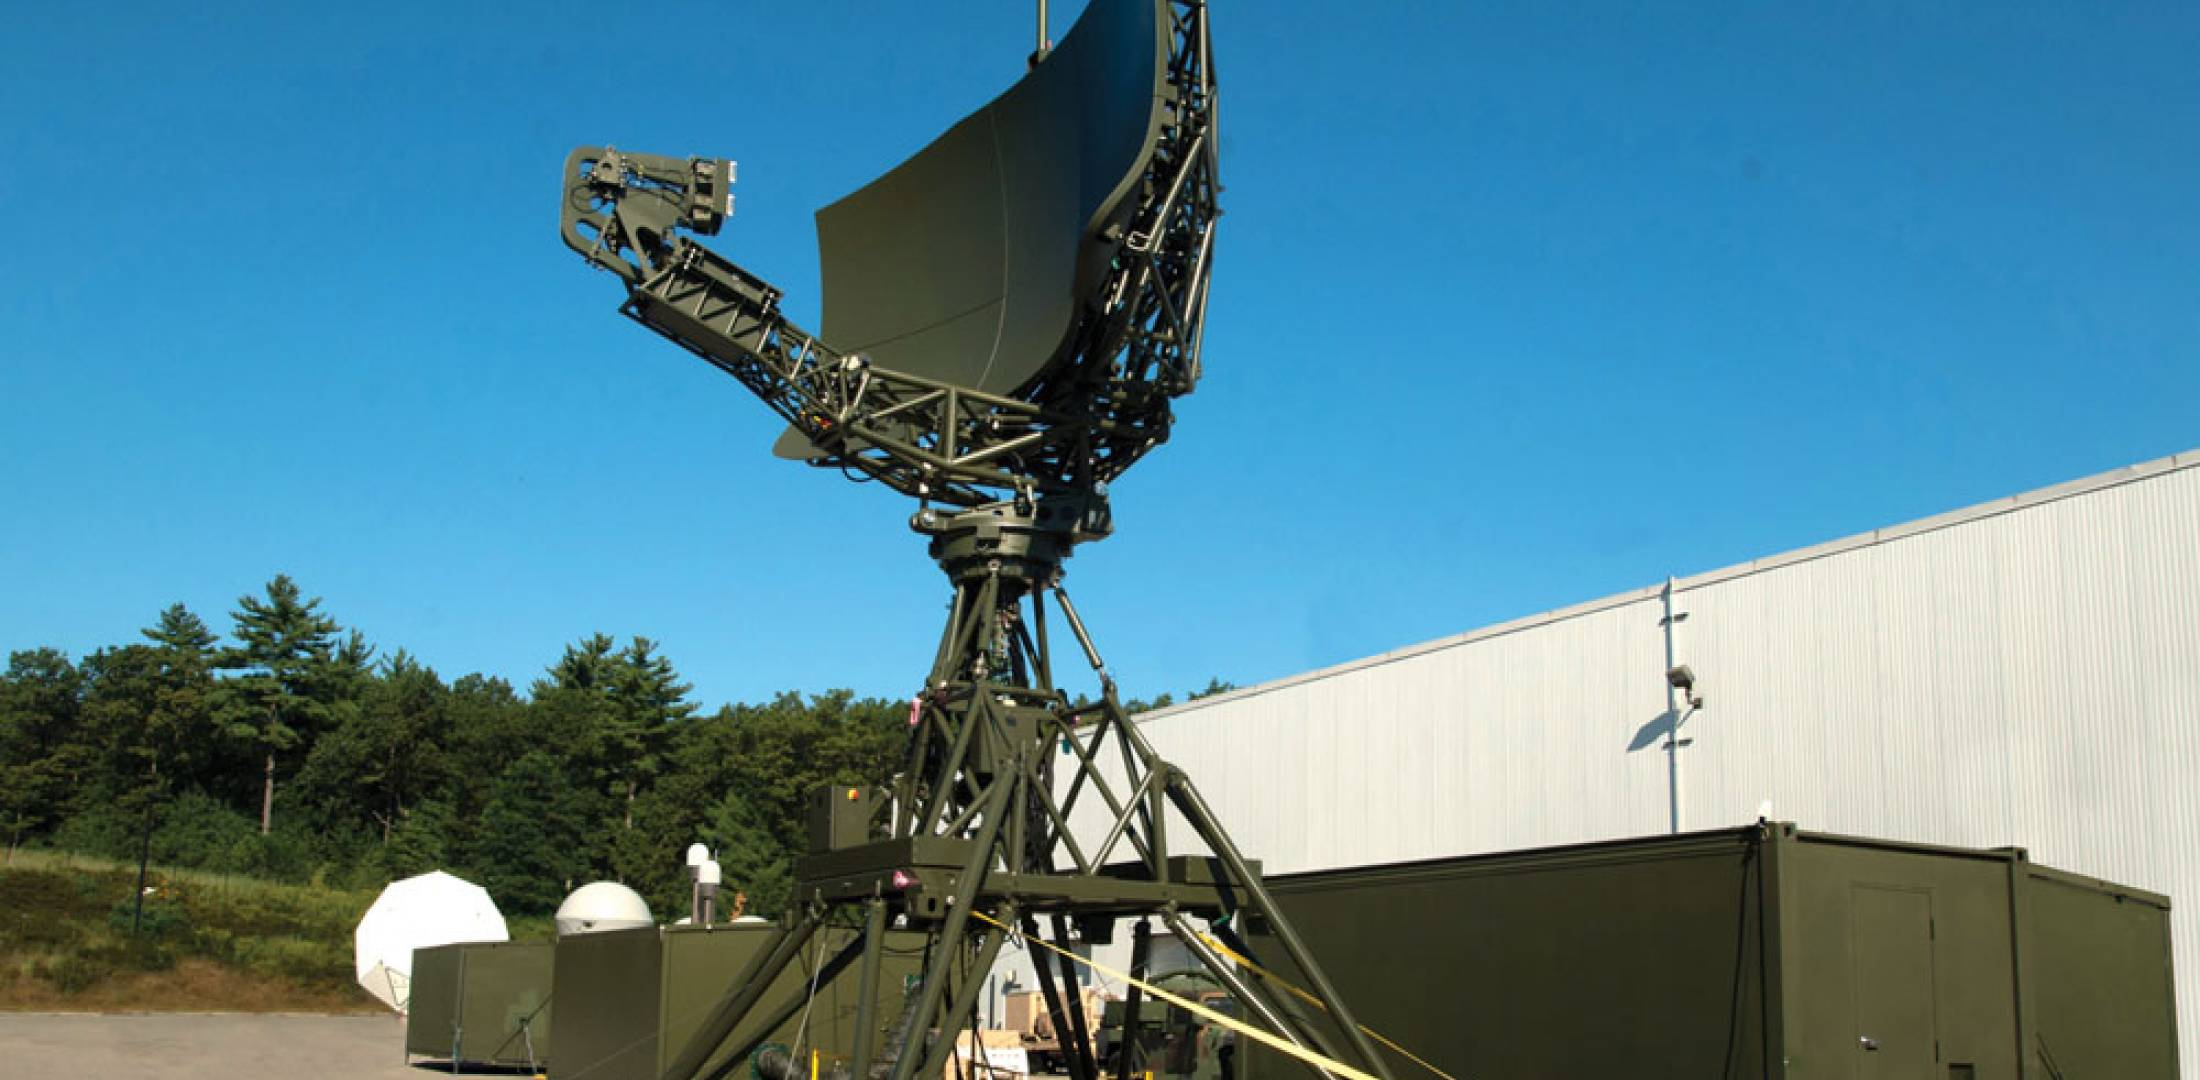 The Raytheon deployable radar approach control (D-RAPCON) system is a modular ATC system that can be transported by four C-130s.